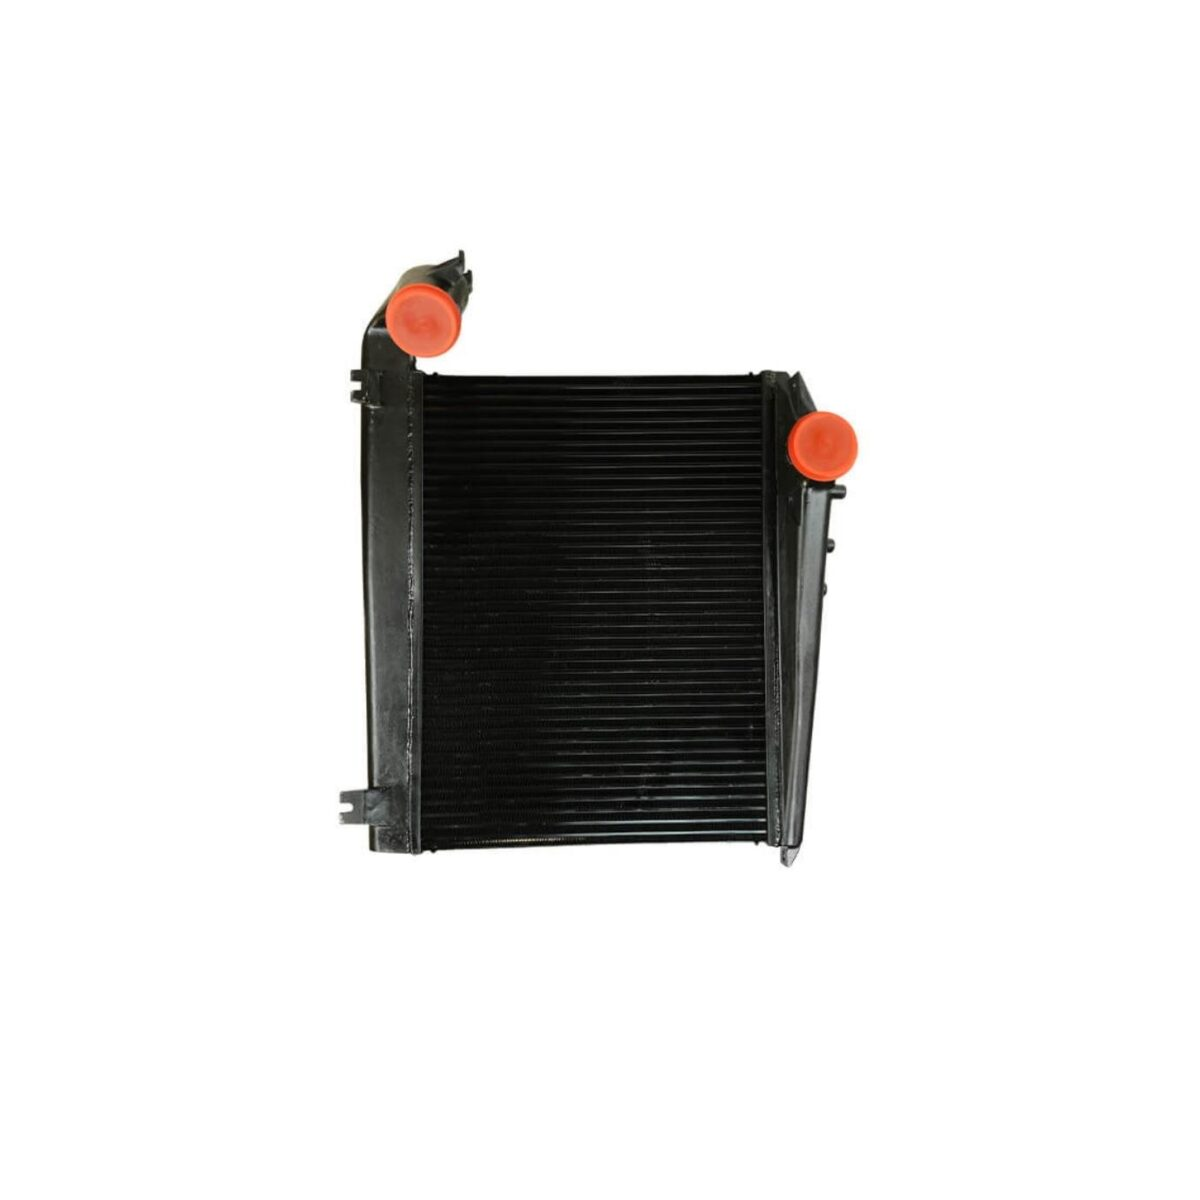 freightliner argosy 92 08 charge air cooler oem 124224000